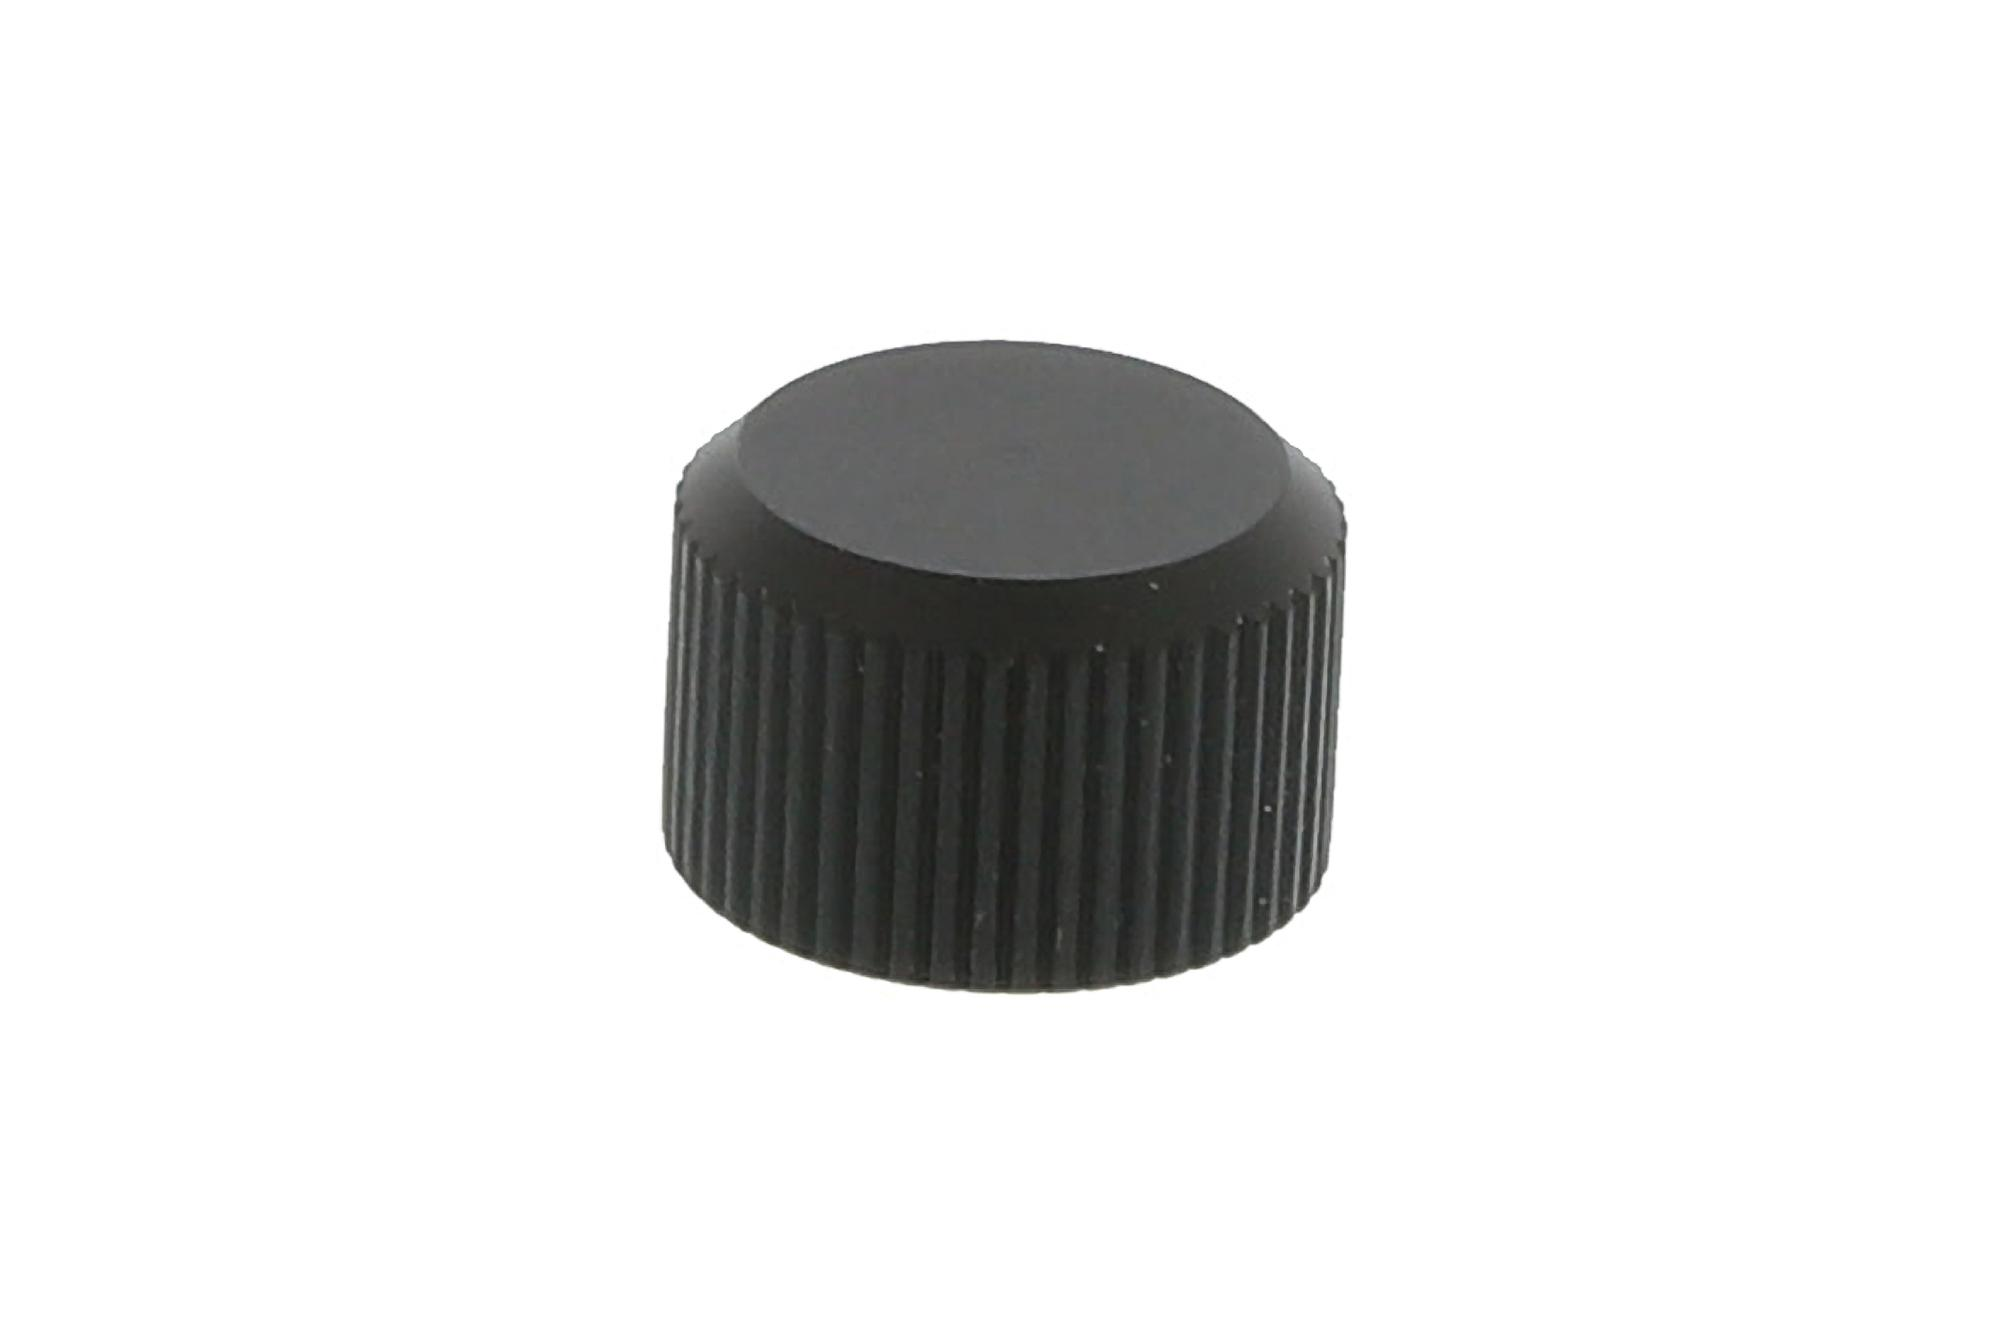 Primary Arms Turret Cap for our Advanced Micro MD-ADS MD-ADS ...